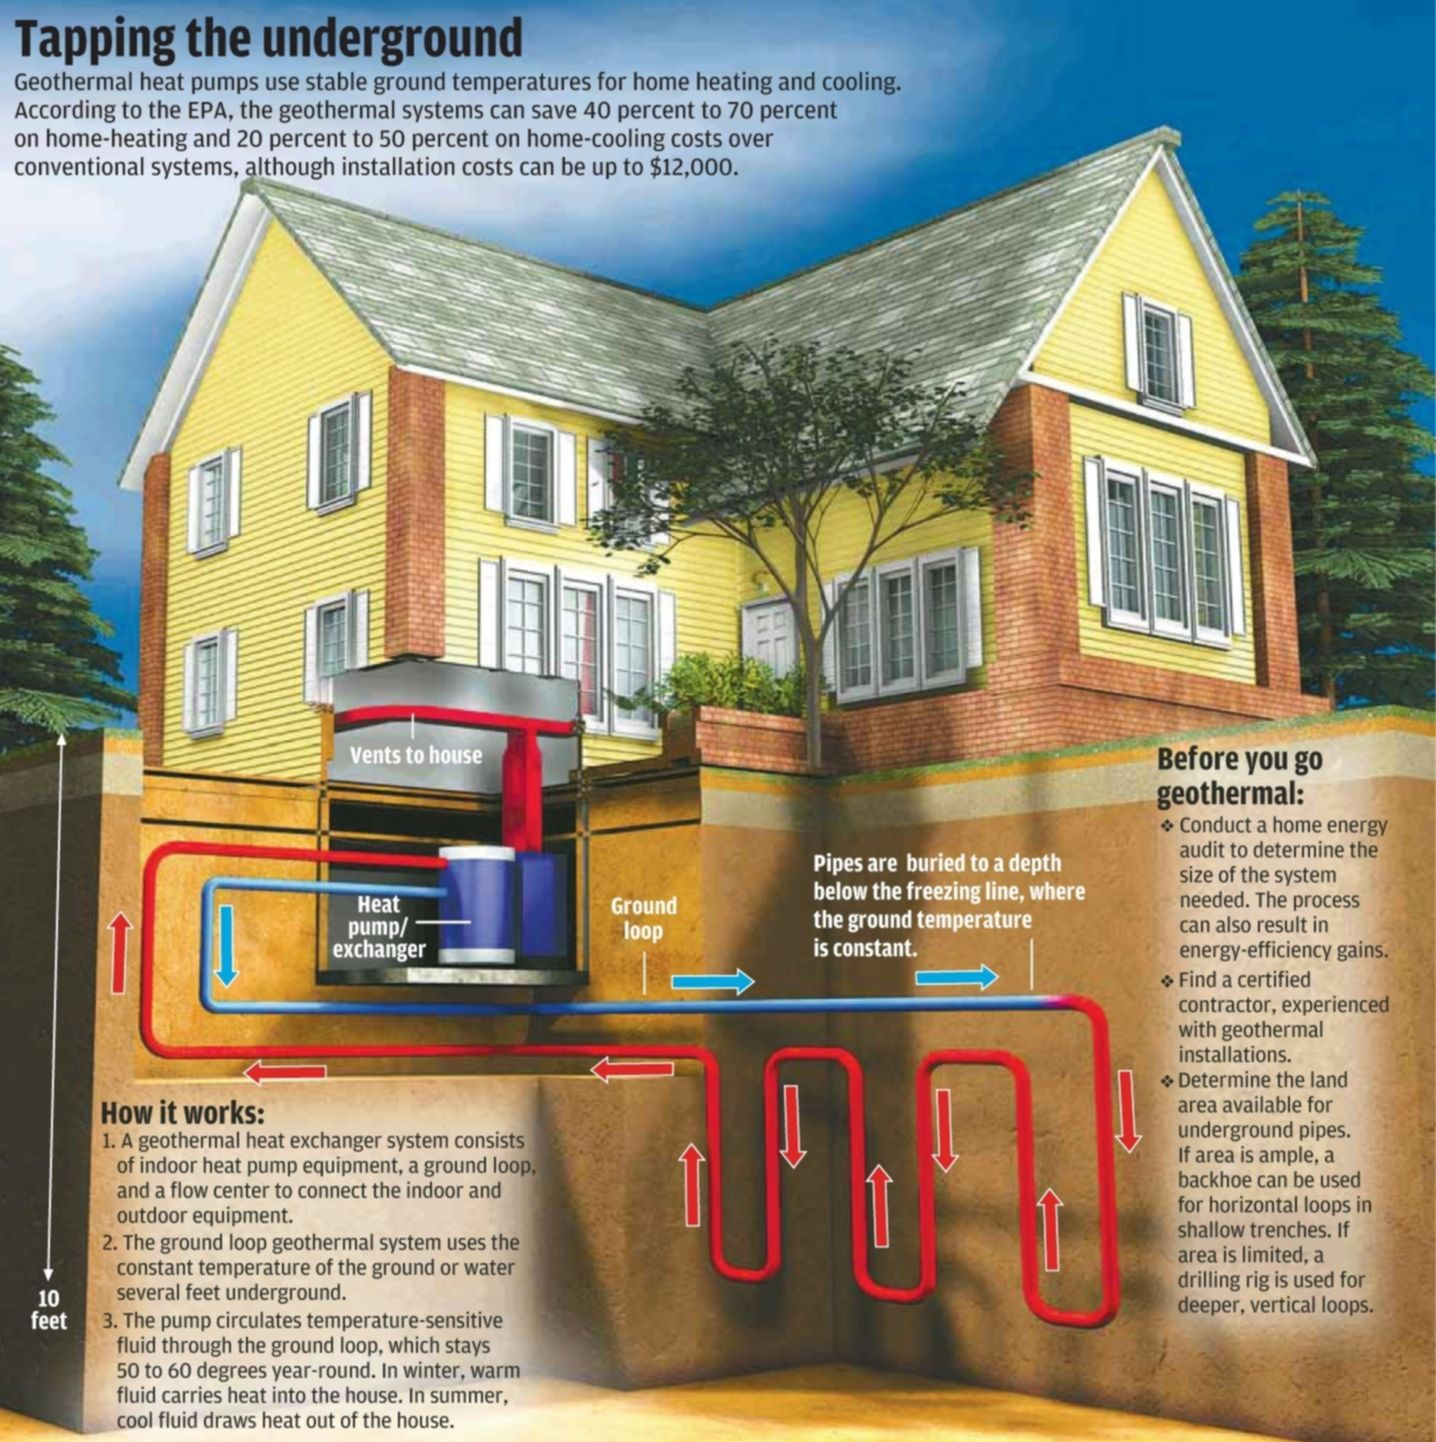 Earth-assisted, earth-friendly: Geothermal heating installations increase here with rise in oil prices